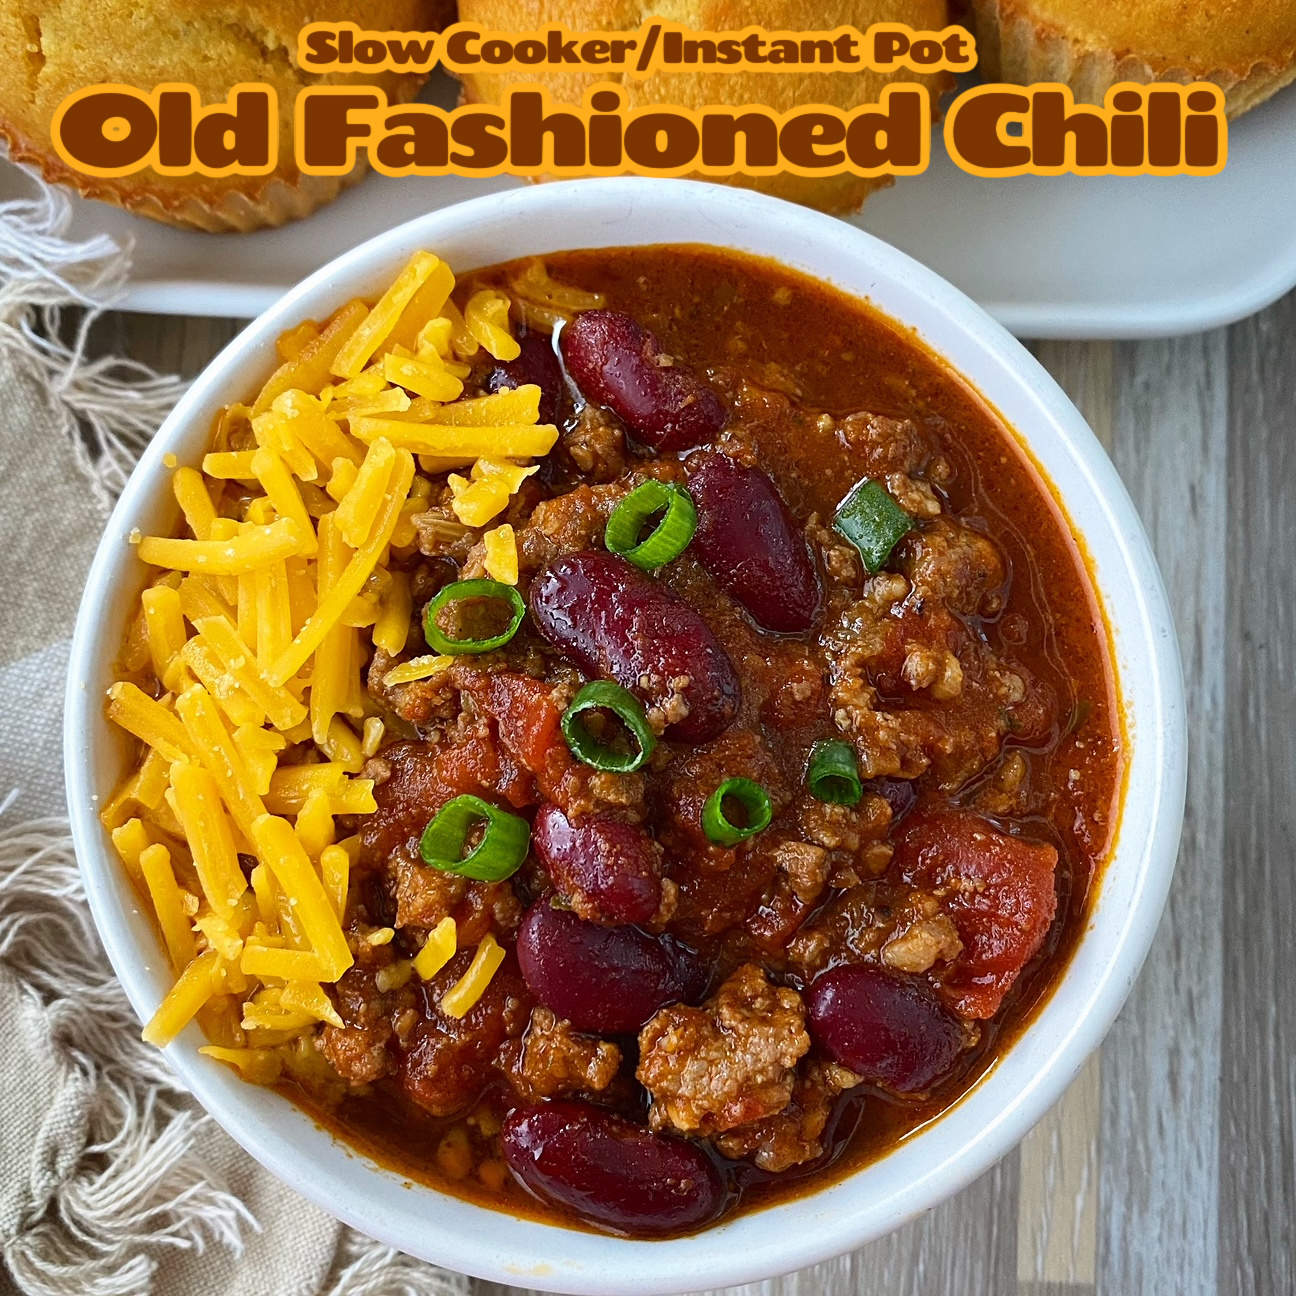 Video Slow Cooker Instant Pot Old Fashioned Chili Fit Slow Cooker Queen